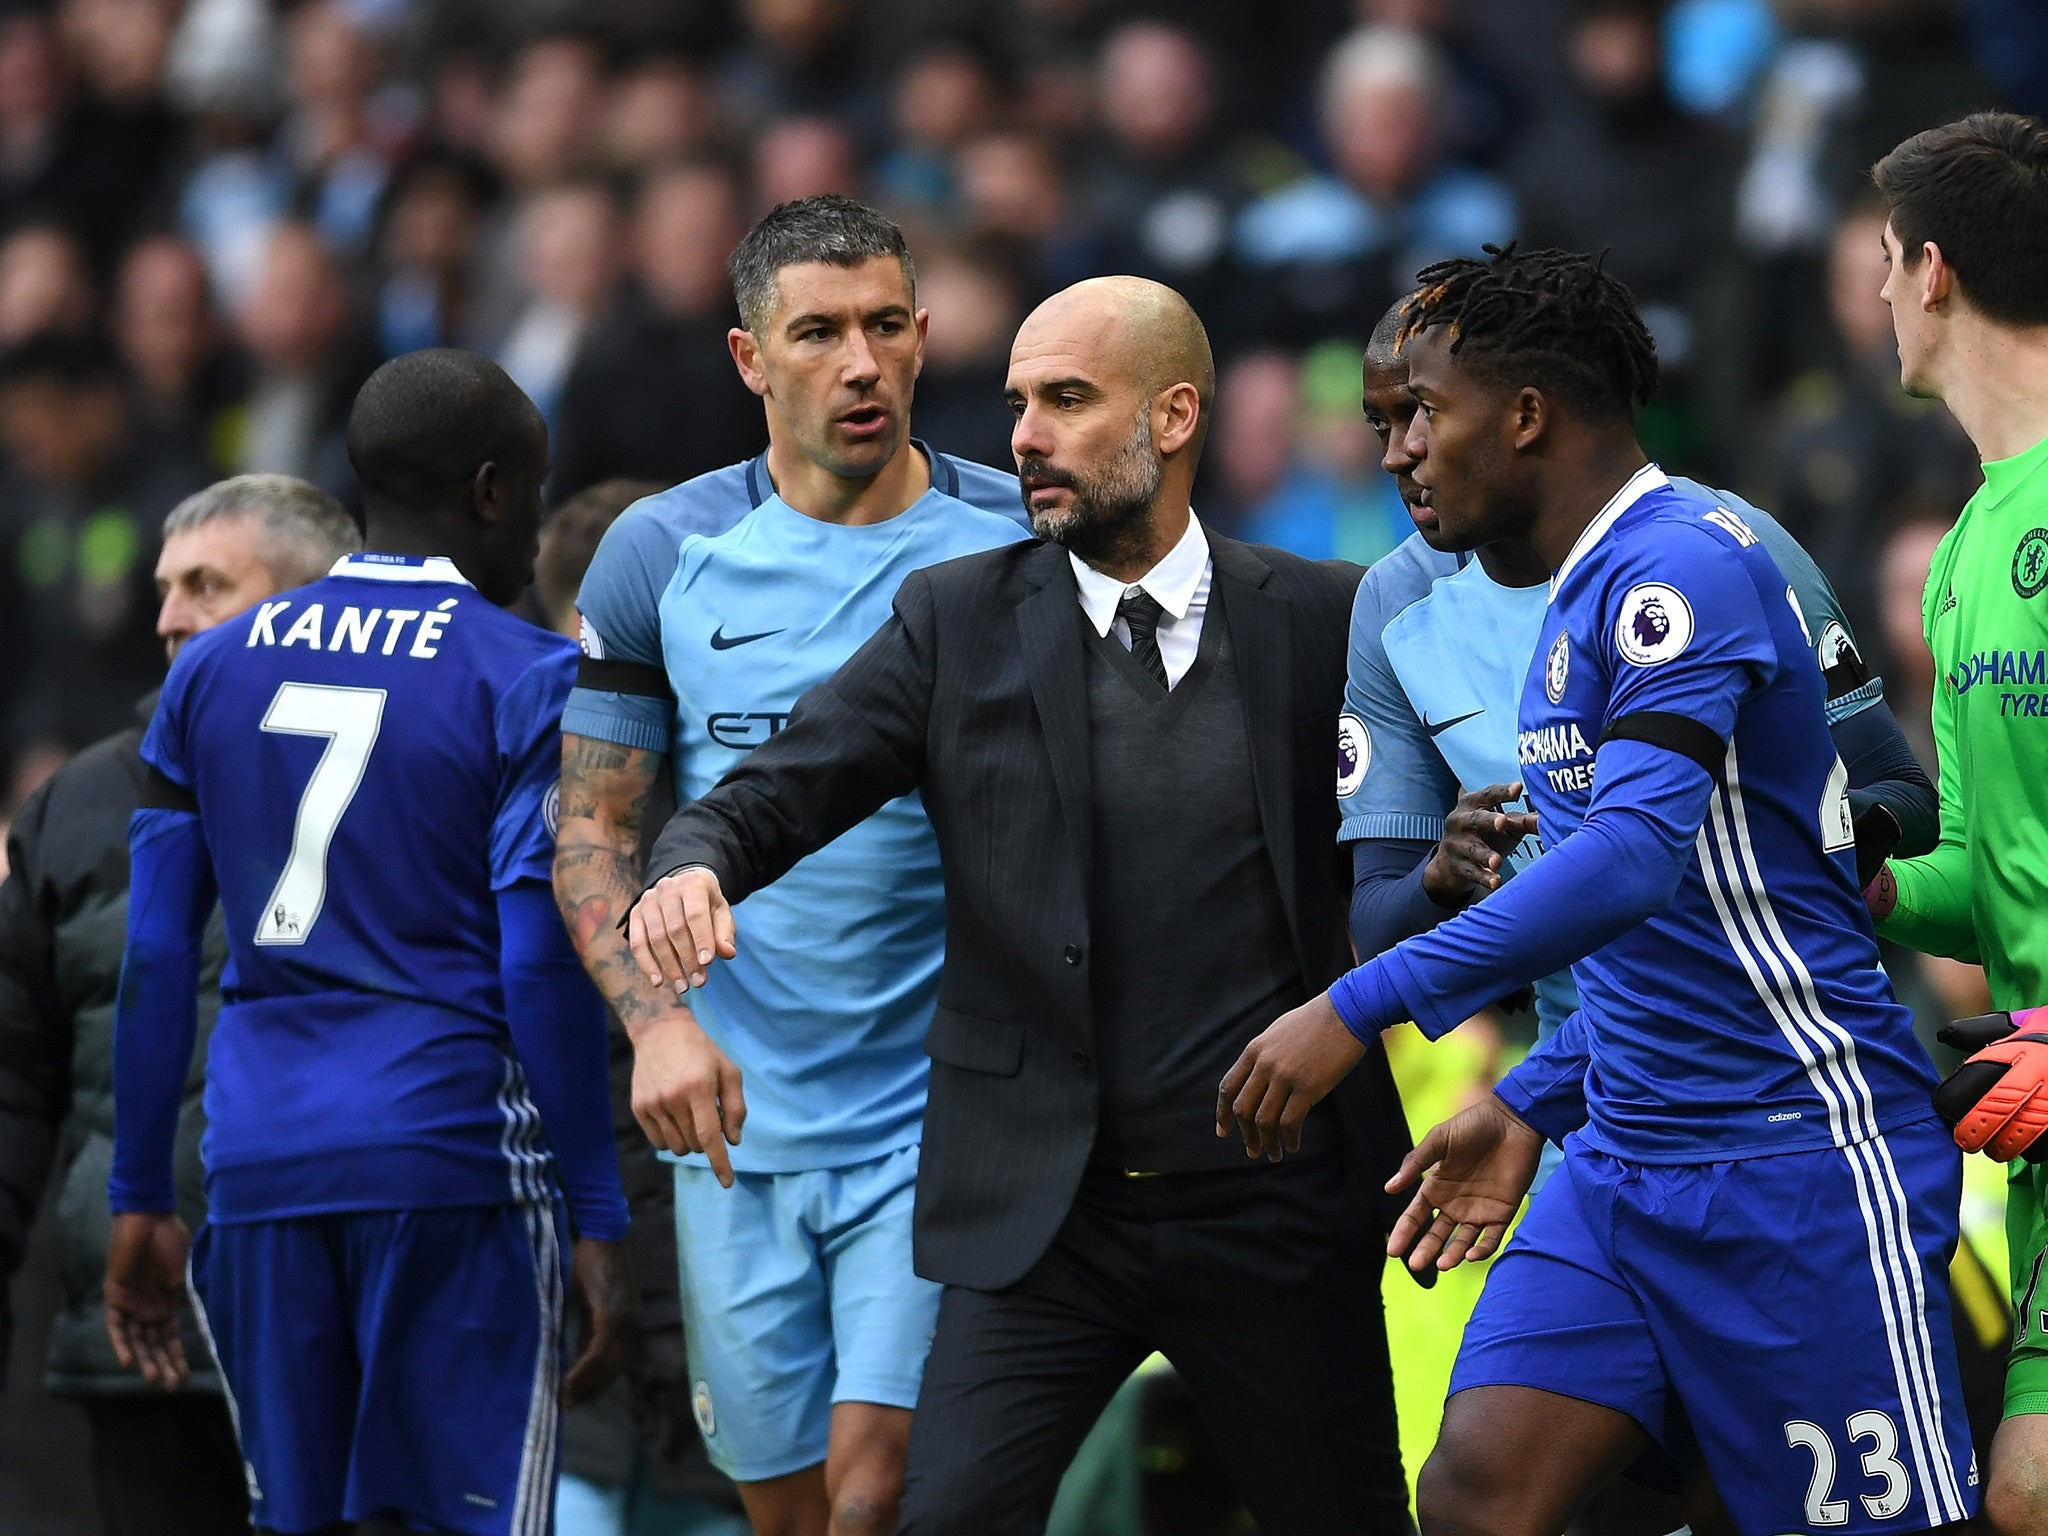 Chelsea Manchester City: Chelsea Vs Manchester City: What Time Does It Start, Where